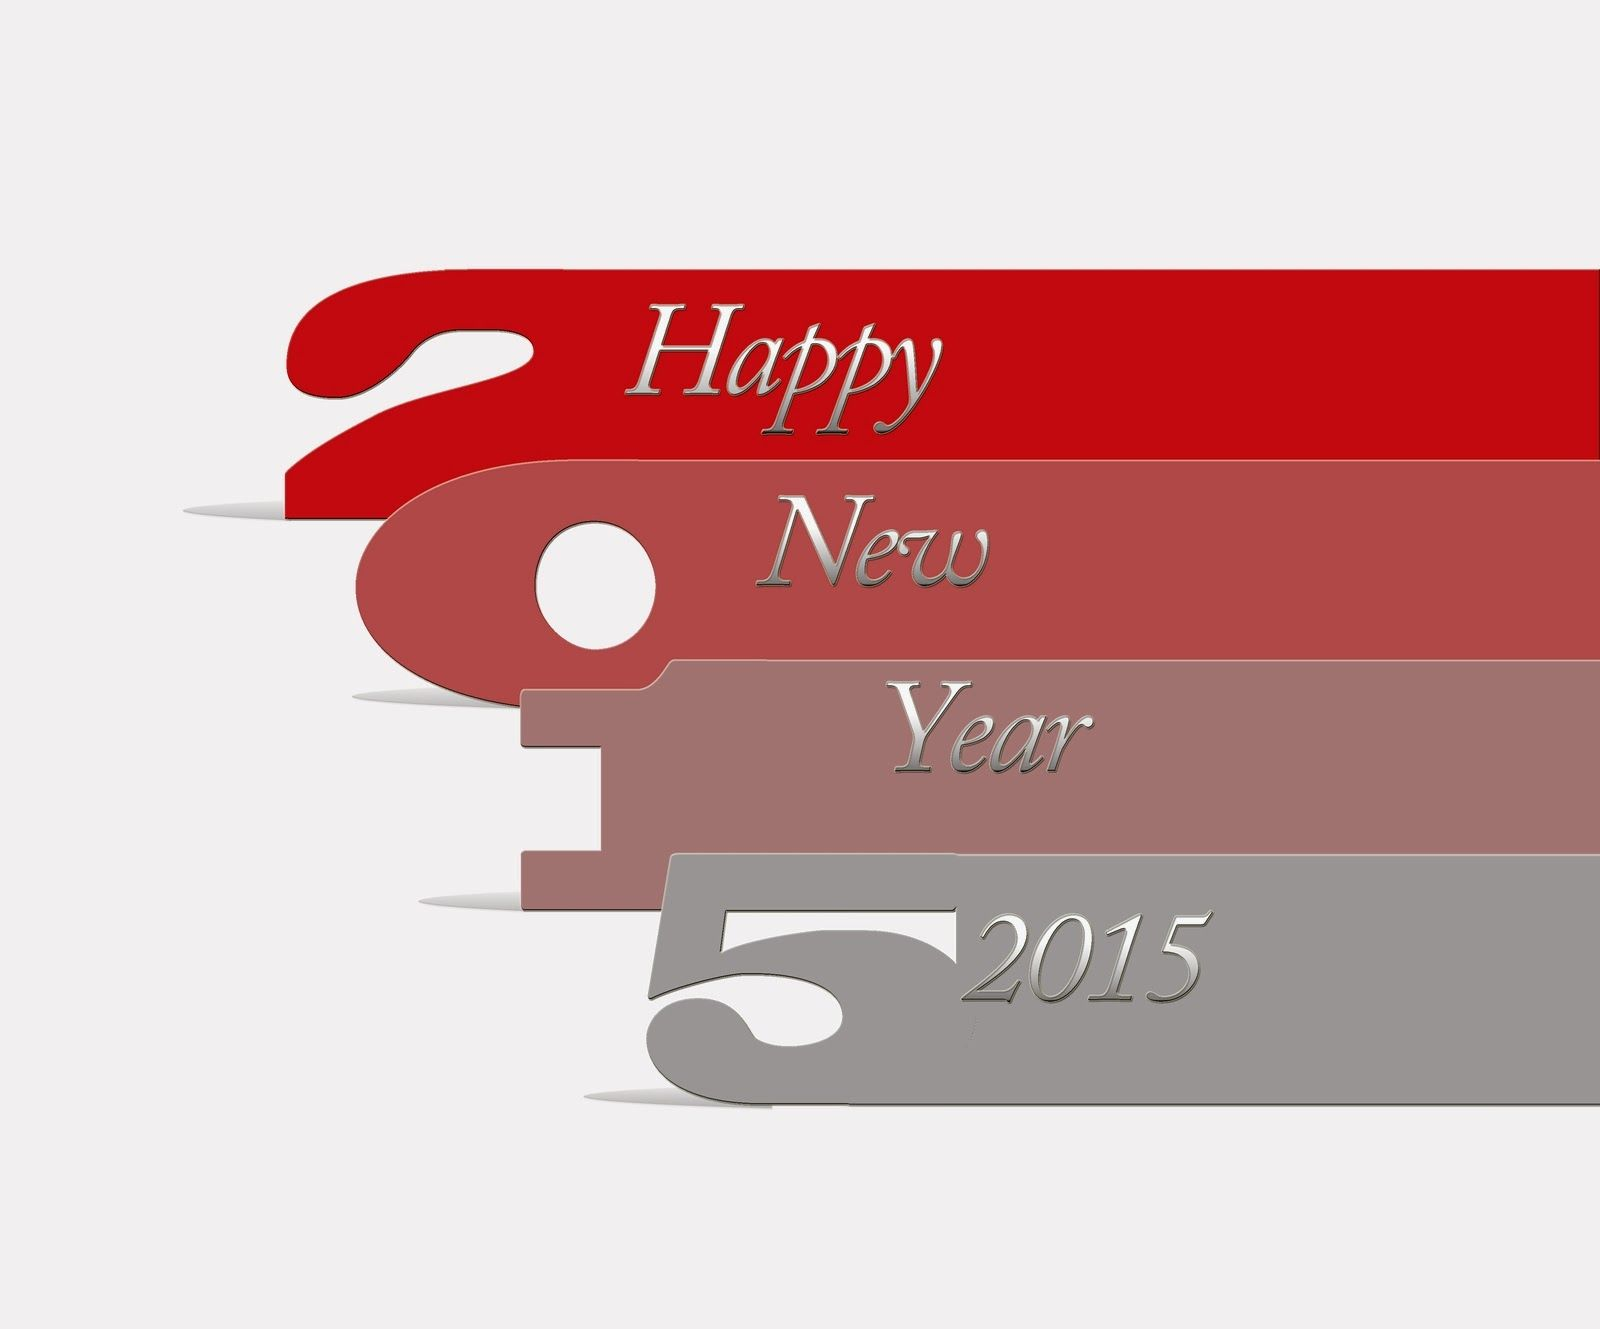 Happy new year 2015 funny wallpaper happy new year 2015 hd happy new year 2015 funny wallpaper happy new year 2015 hd wallpapers and greetings download free beautiful indian new year 2015 wallpapers best greetings m4hsunfo